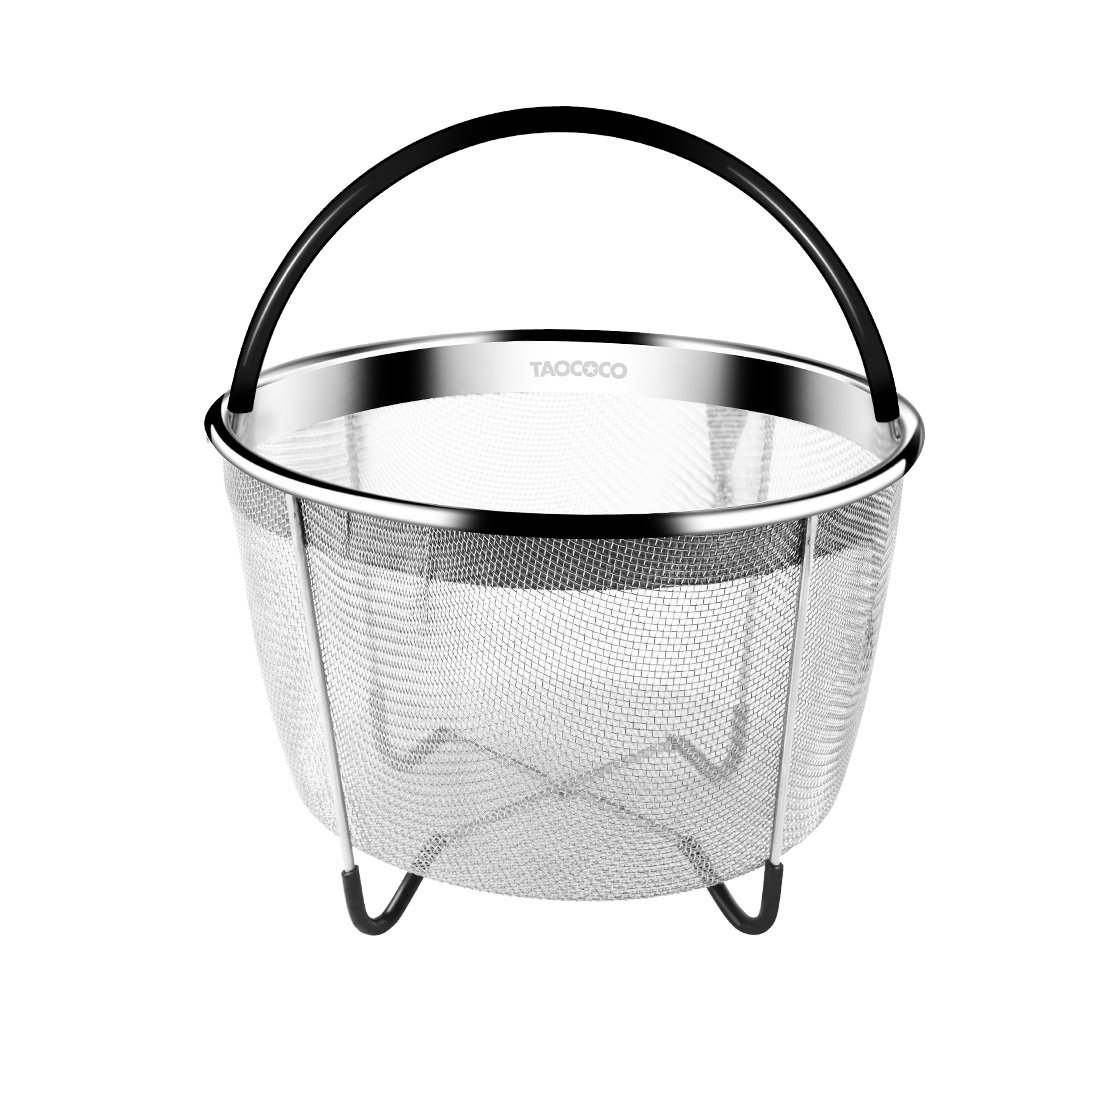 Steamer Basket, Taococo Instant Pot Accessories for 6 or 8 Quart Fits InstaPot Pressure Cooker, Food Grade Stainless Steel Steamer Great for Steaming Fruits Vegetables Eggs